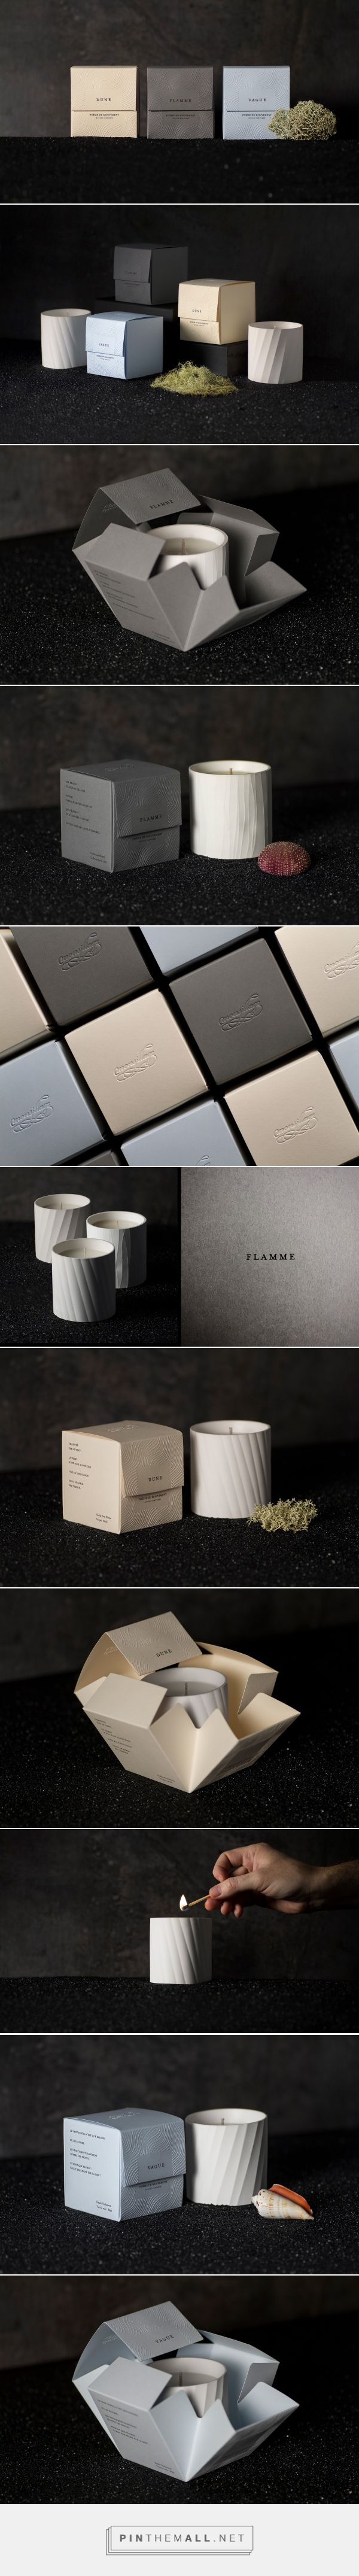 Monsillage Movements Candles packaging design by ByHaus - http://www.packagingoftheworld.com/2018/01/monsillage-movements-candles.html